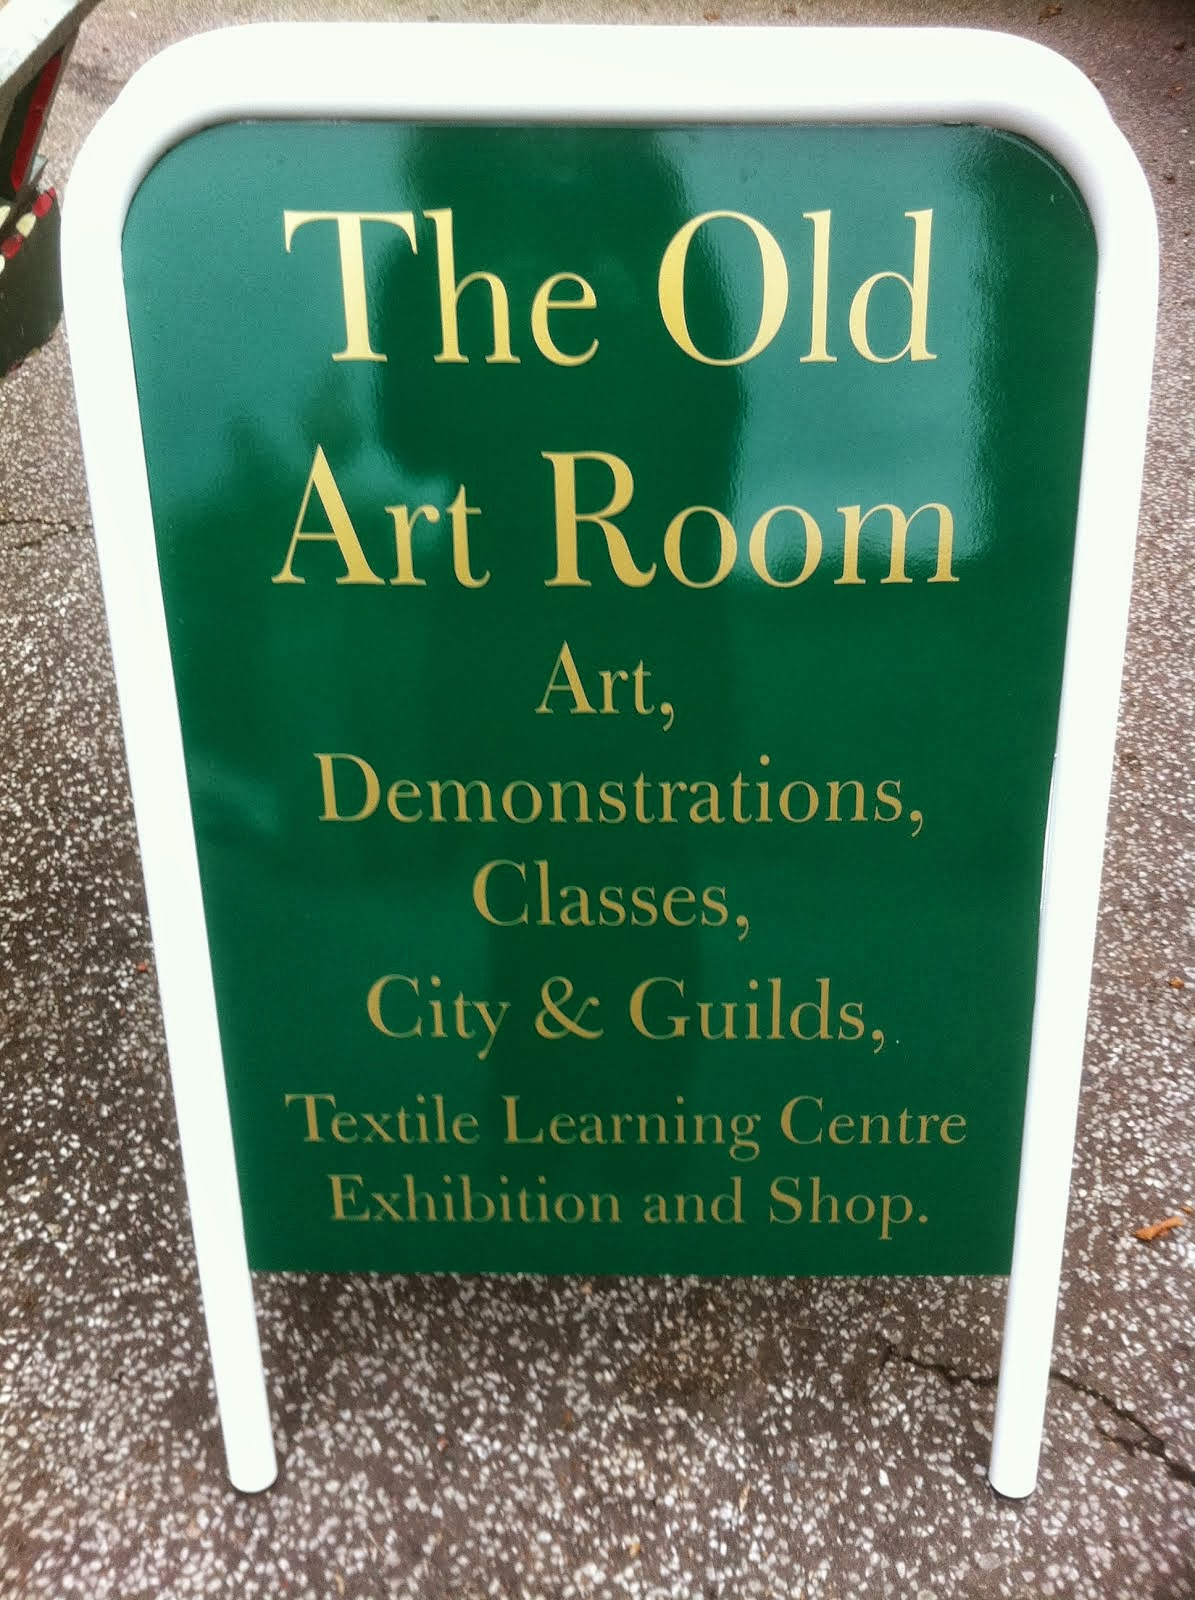 The Old Art Room